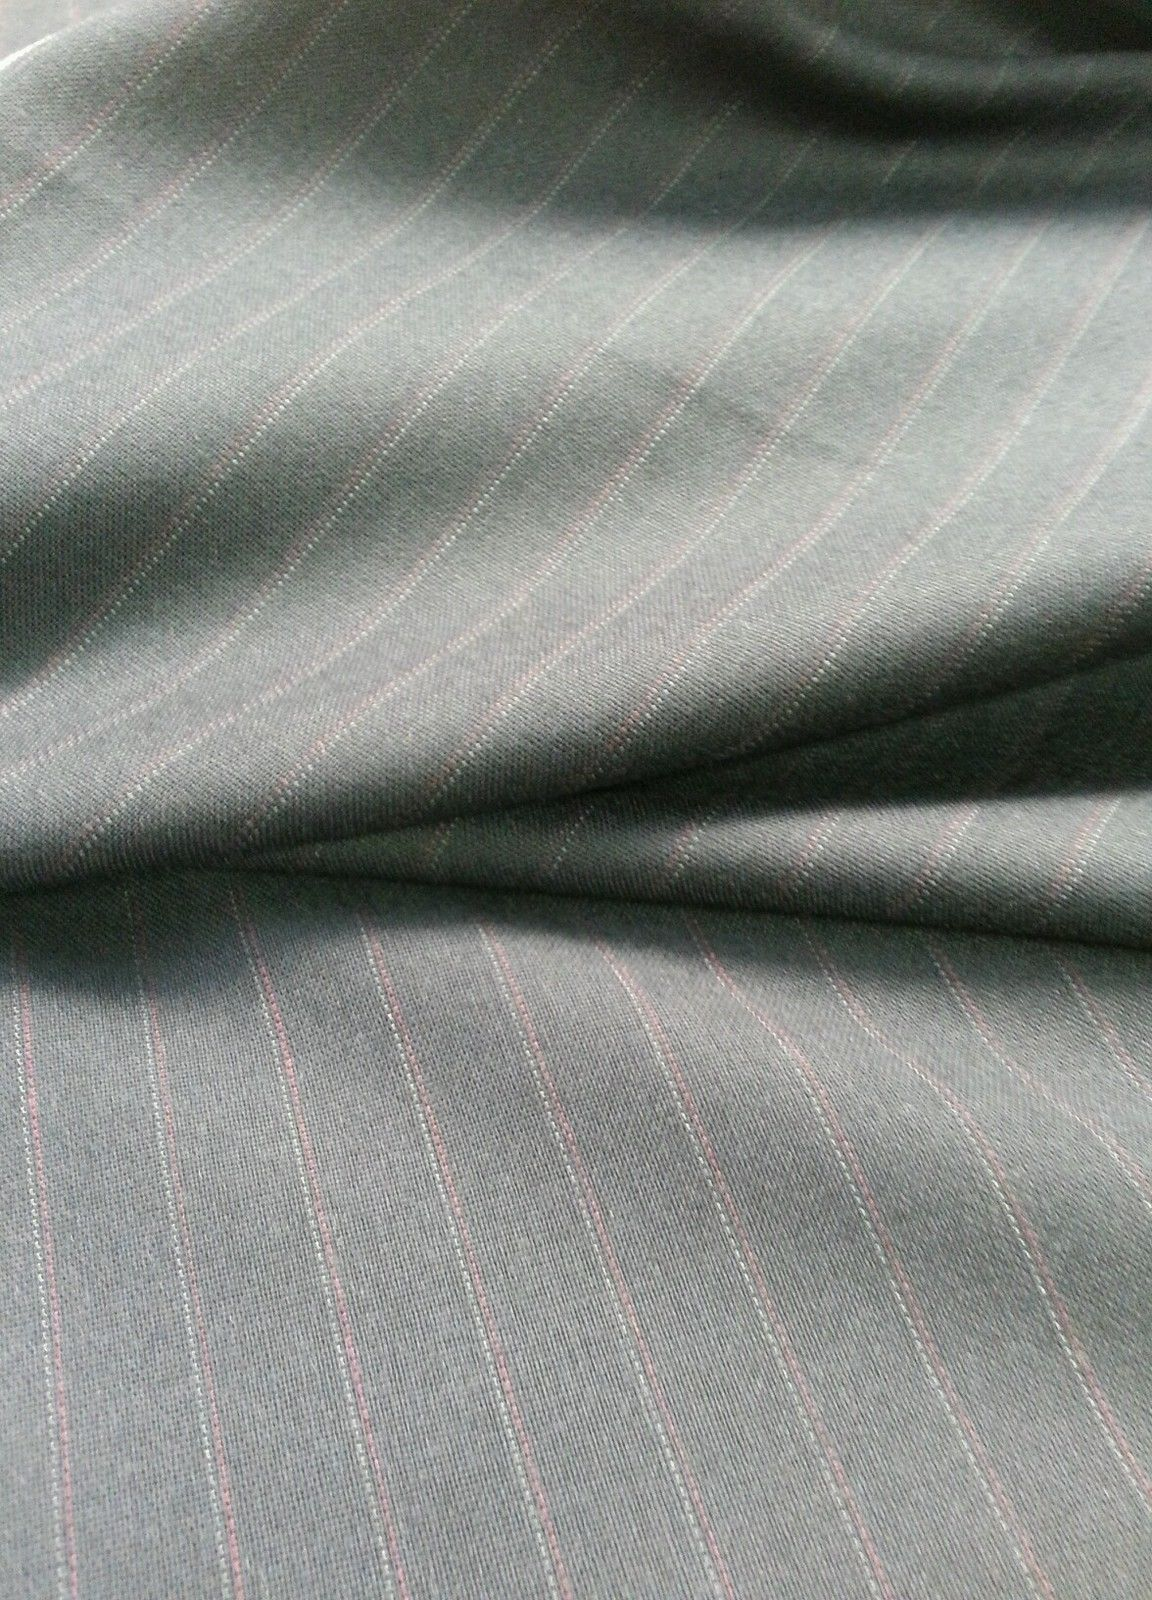 120'S fine vintage italian wool suit fabric   5 Yard  msrp 650